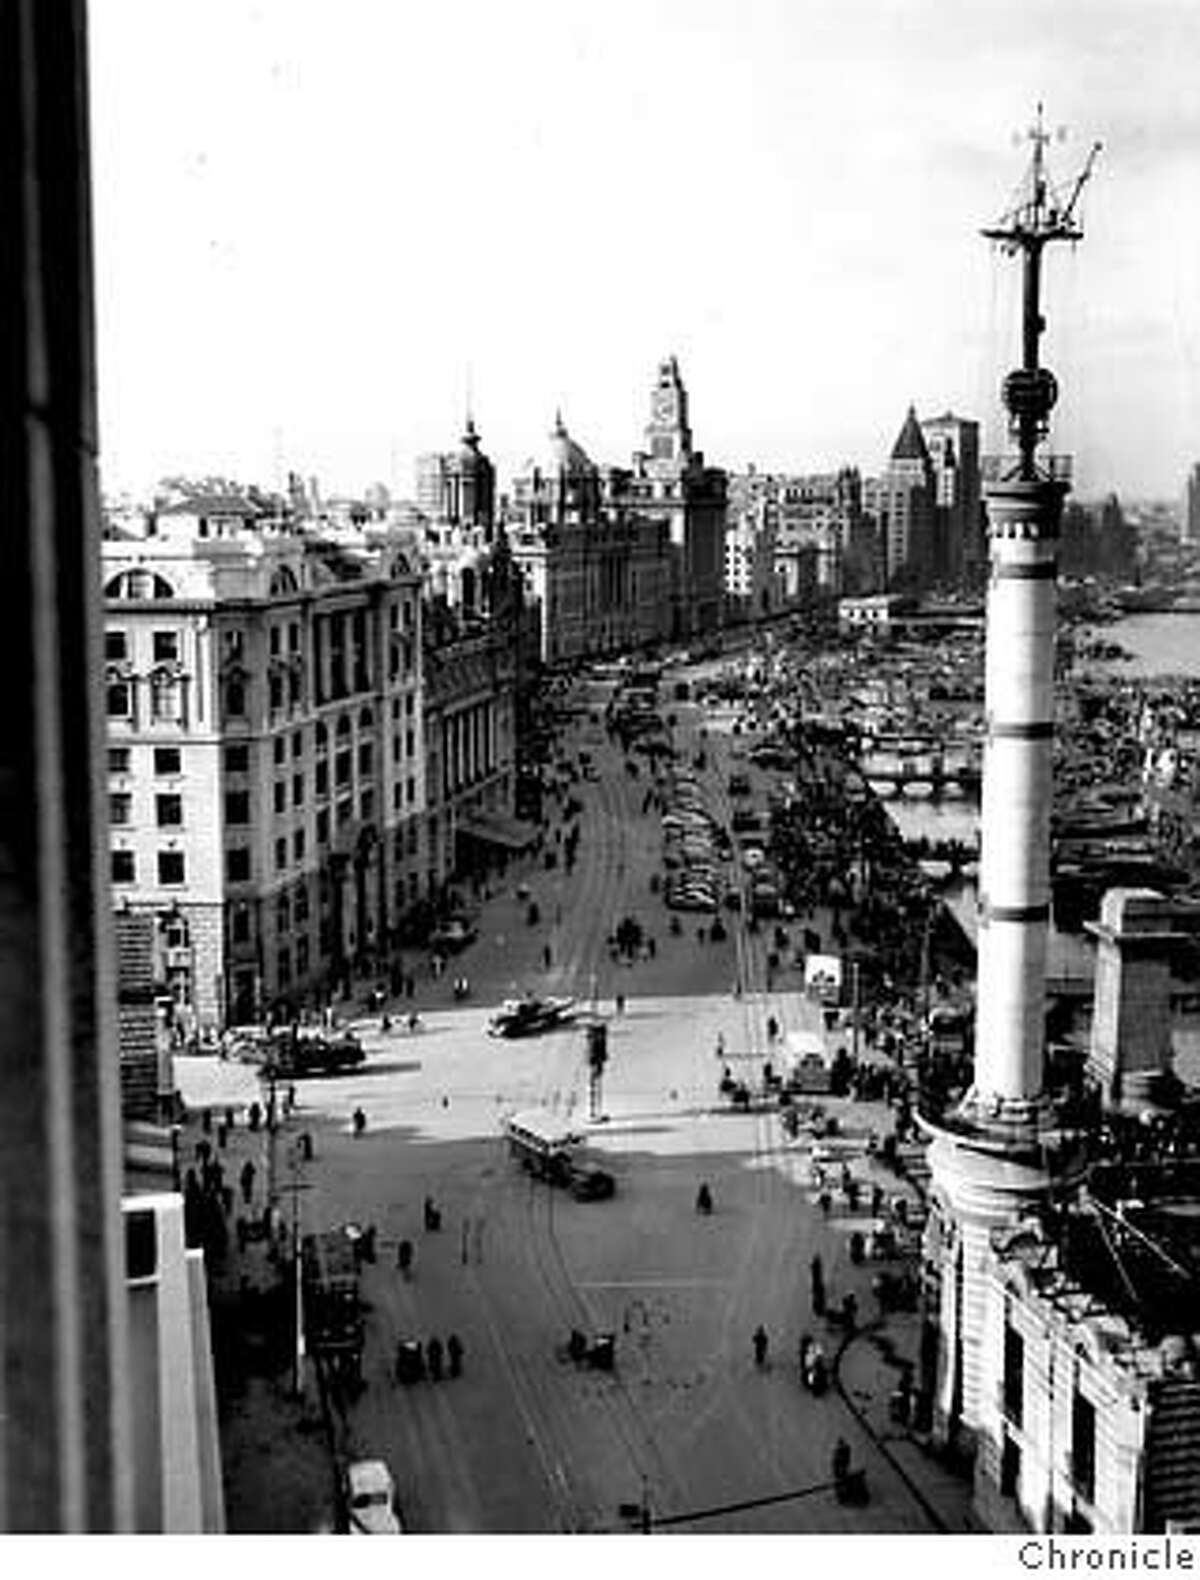 A bird's-eye view of the Bund and waterfront in Shanghai, as it appeared in 1949. Chronicle File Photo